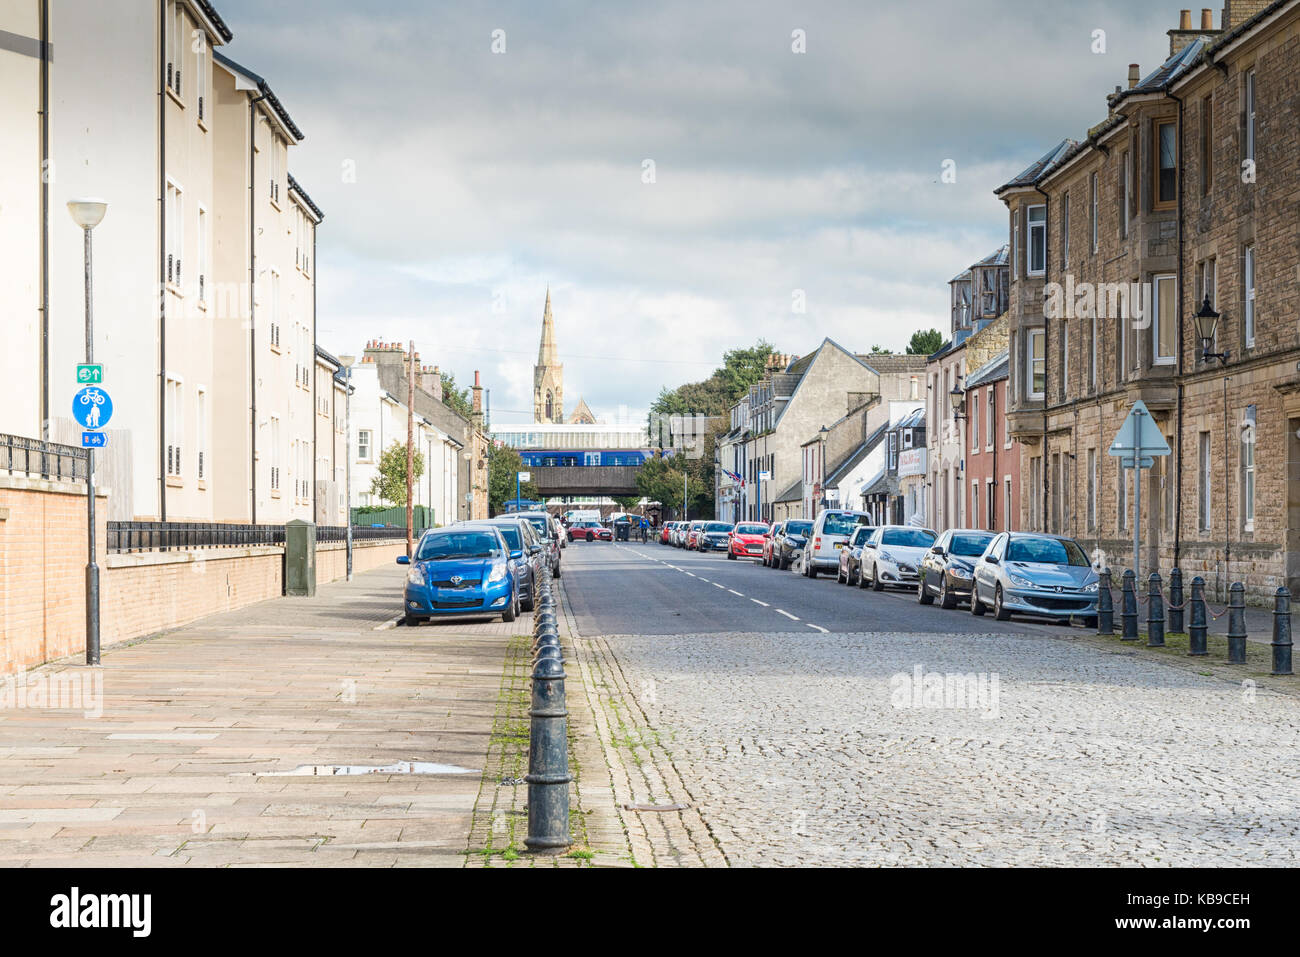 Harbour Street, UK - September 28, 2017: New and regenerated harbour Street Irvine in Scotland with its bright maratime - Stock Image